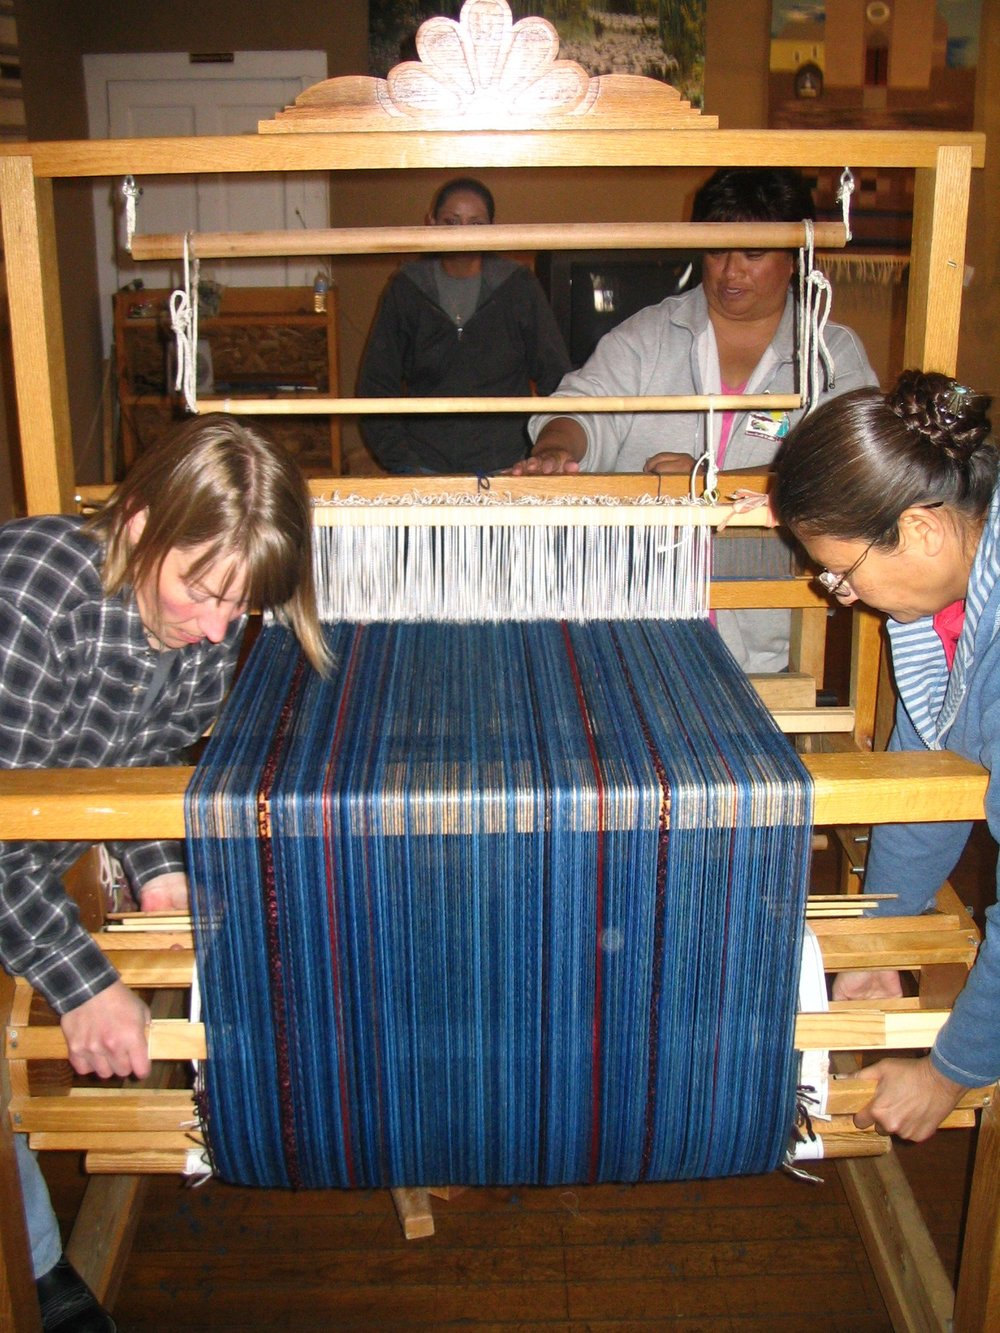 Winding the new warp onto the loom